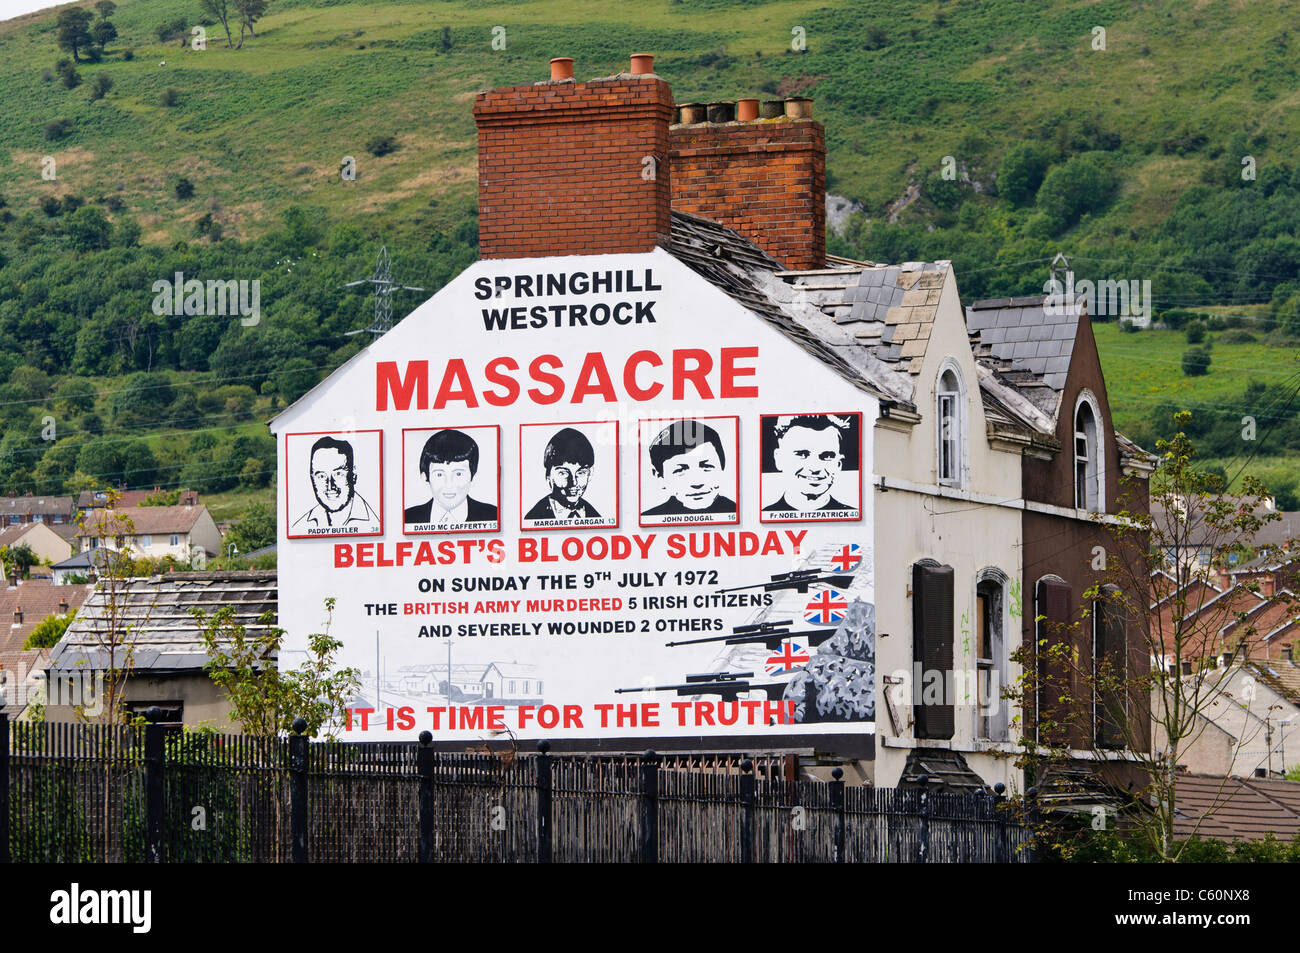 Mural in West Belfast commemorating the Springhill Westrock Massacre, 9th July 1972 - Stock Image